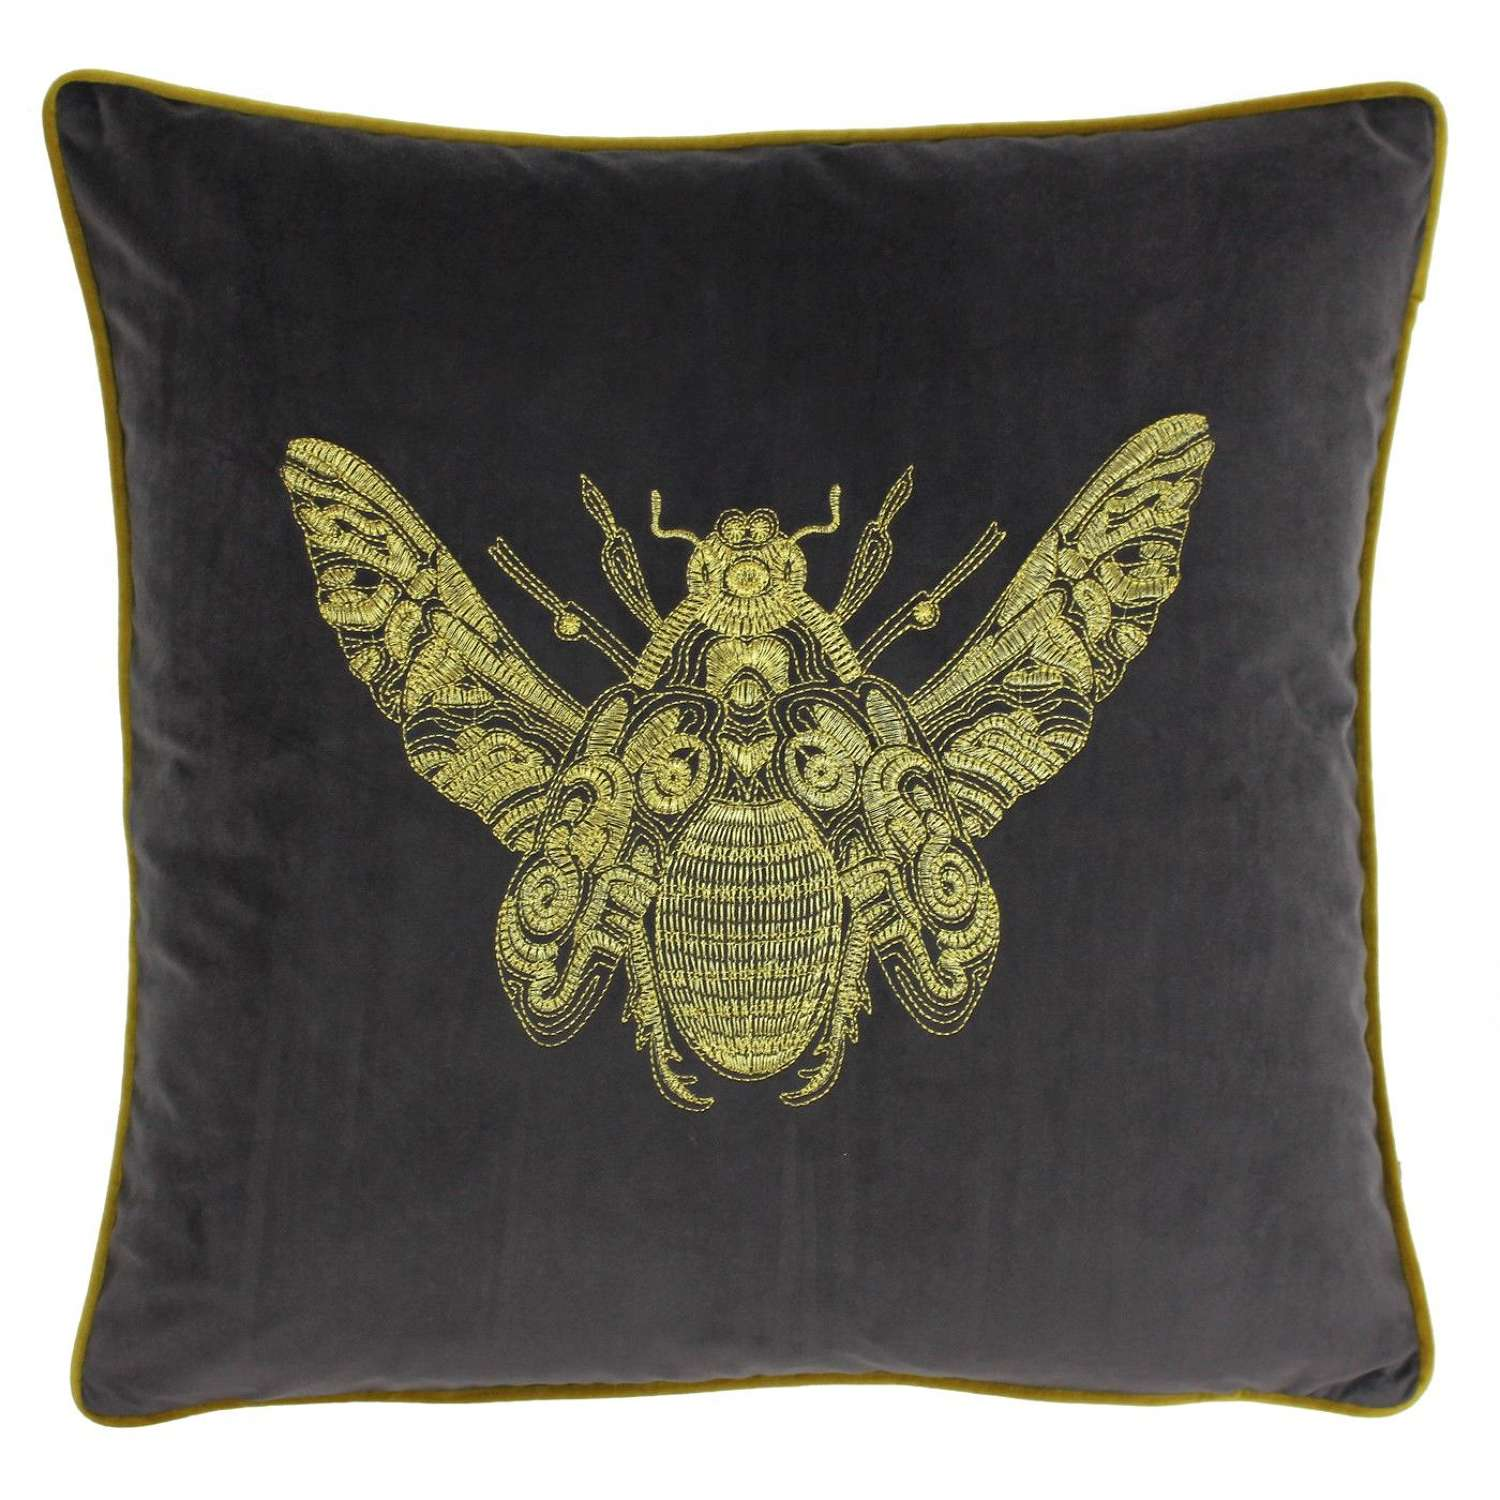 Velvet Piped Cushion with Embroidered Bee - Slate